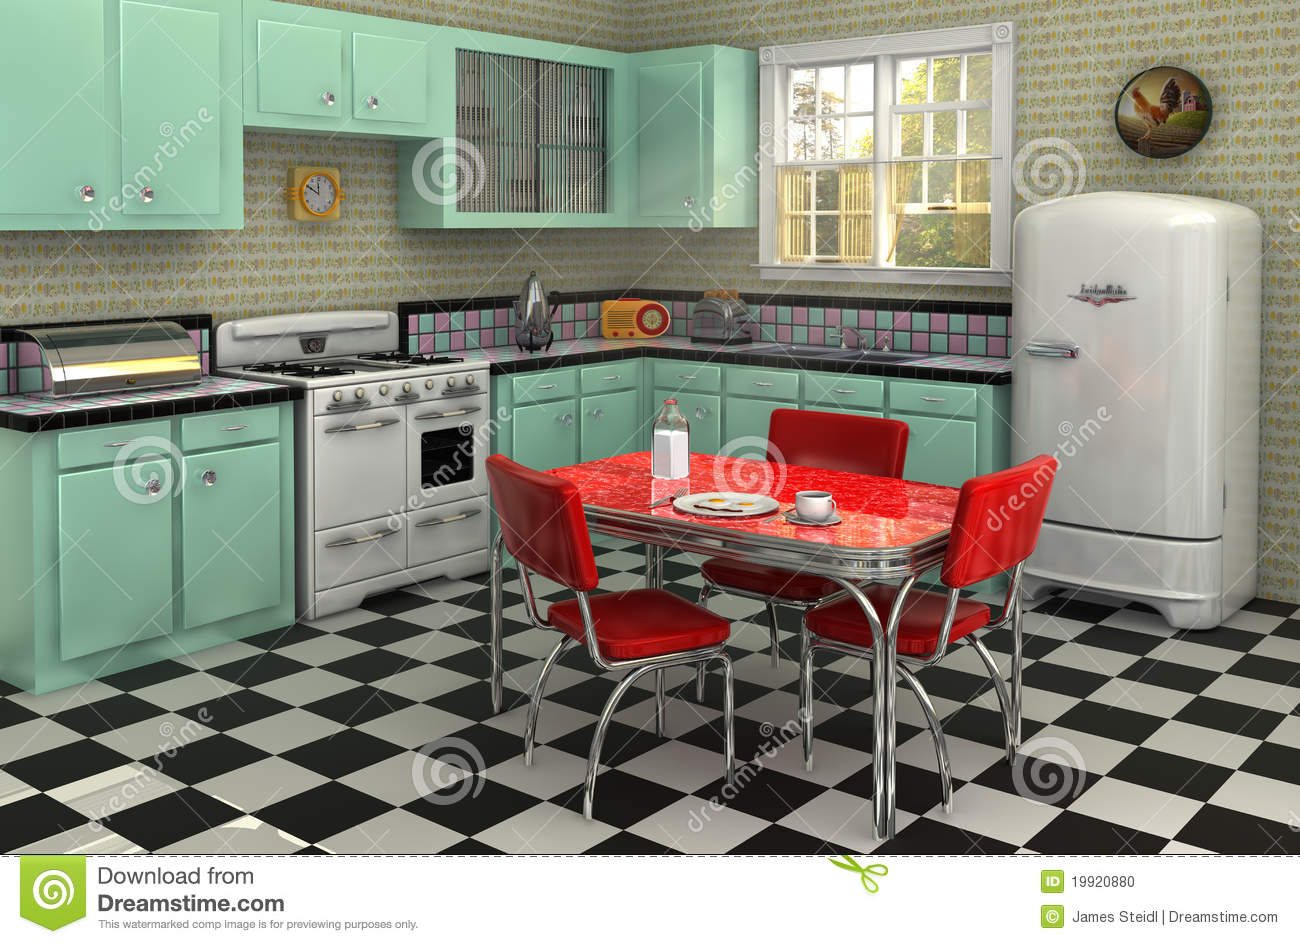 Retro kitchen from the 1950s complete with stove, refrigerator, chrome ...